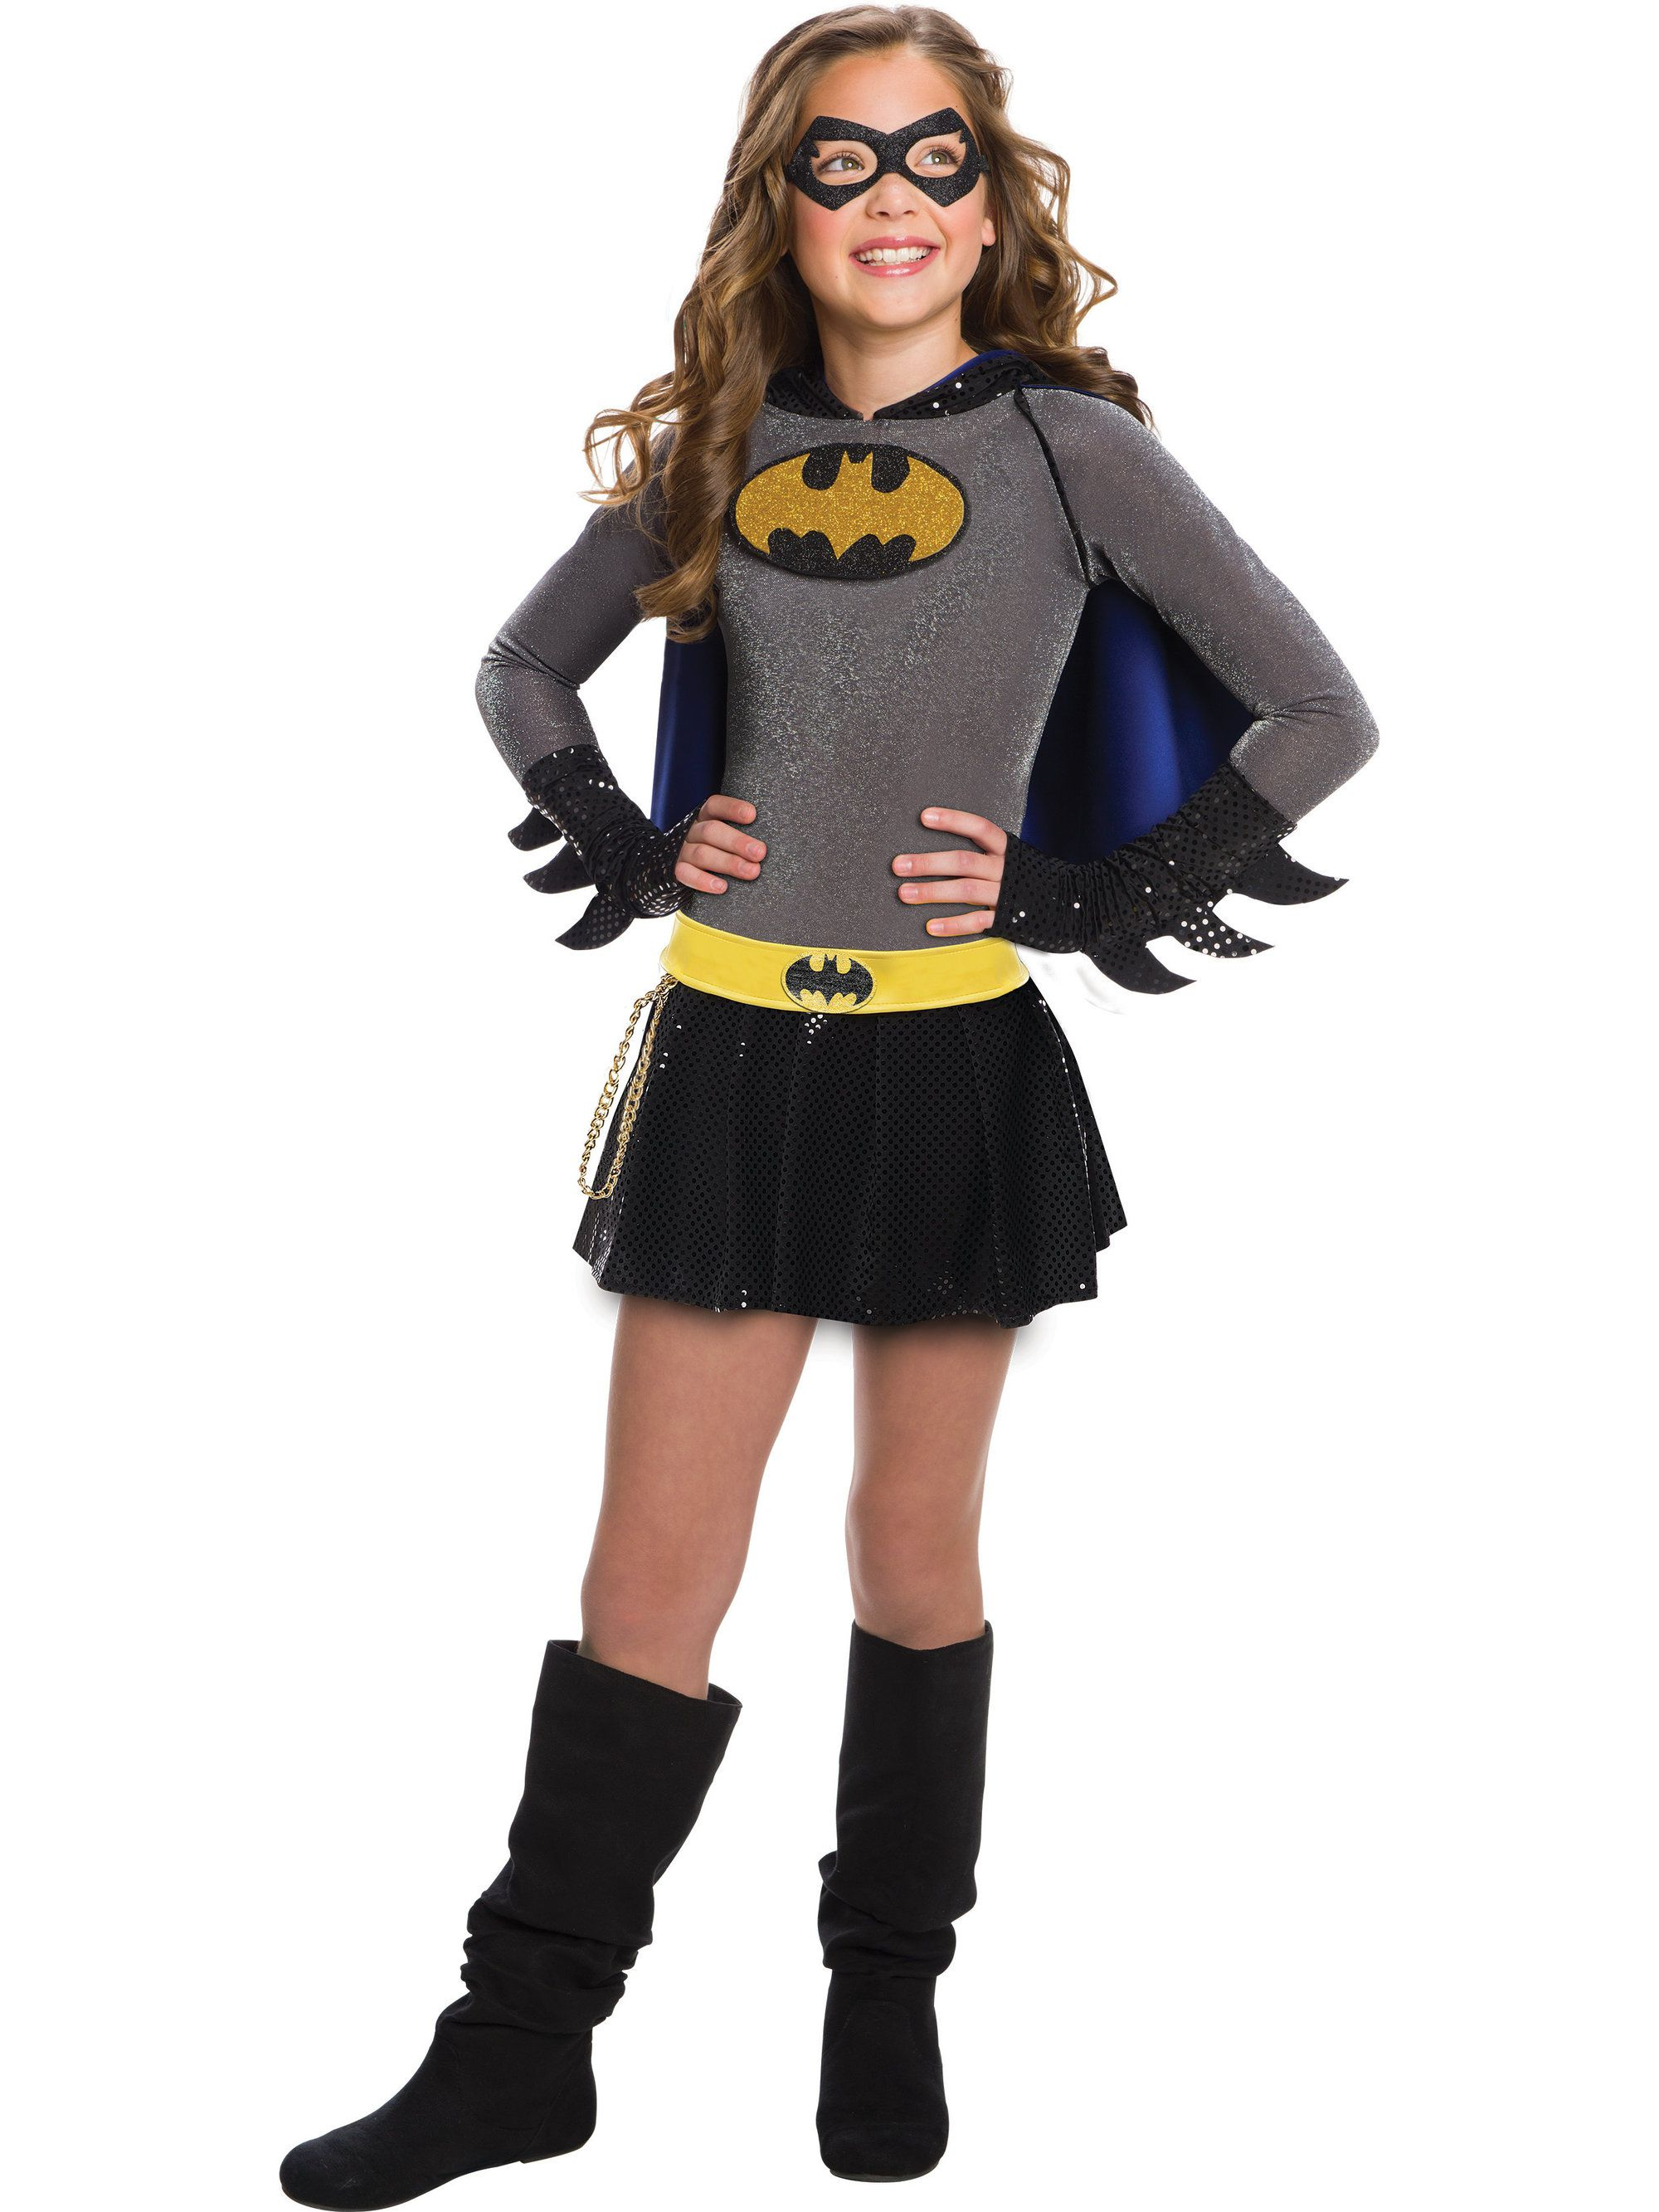 For Halloween our kids Batgirl costume will make your child feel like a true superhero. This girls superhero Halloween costume comes in sizes s-l.